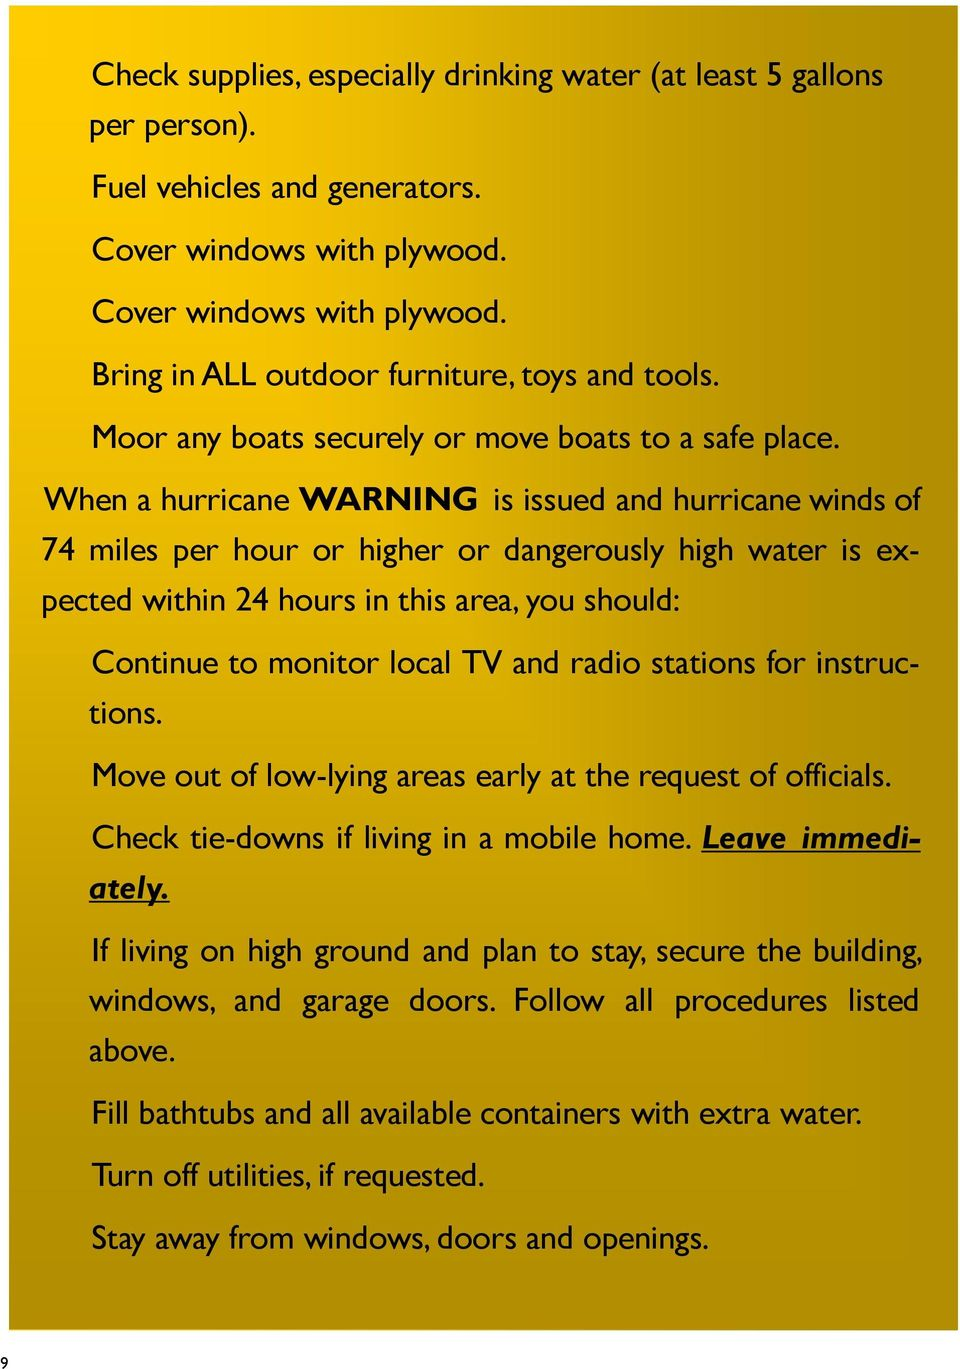 When a hurricane WARNING is issued and hurricane winds of 74 miles per hour or higher or dangerously high water is expected within 24 hours in this area, you should: Continue to monitor local TV and